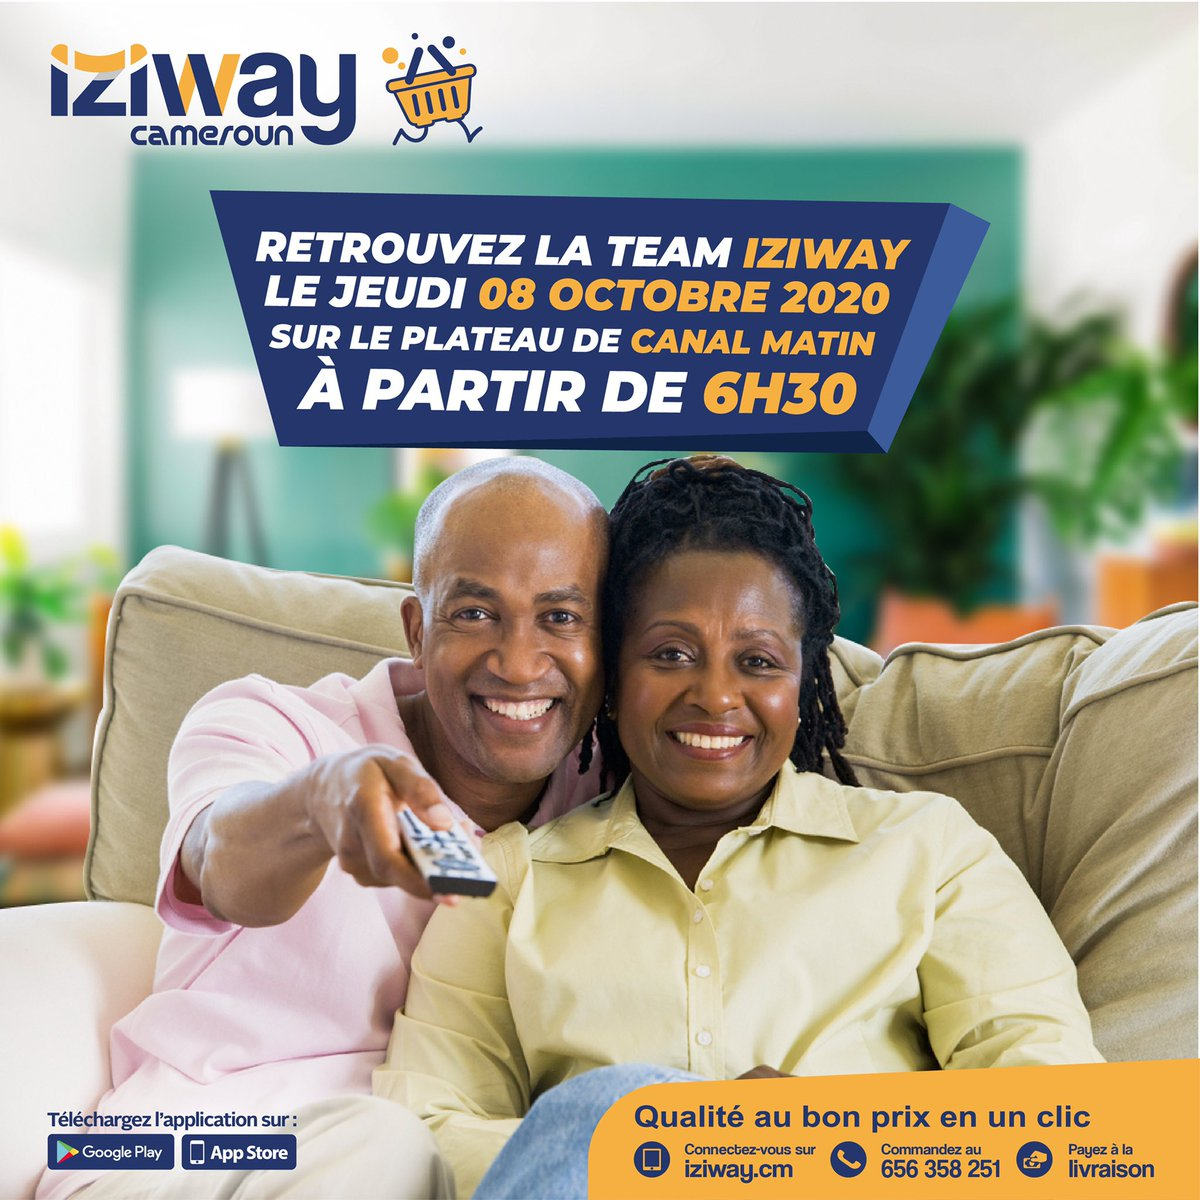 Rendez-vous: 🗓 Jeudi 08  ⏰ 6:30 AM 📺 @canal2inter / Canal matin  #iziway #television #canal2 #canalmatin https://t.co/3KRjr8nDQY